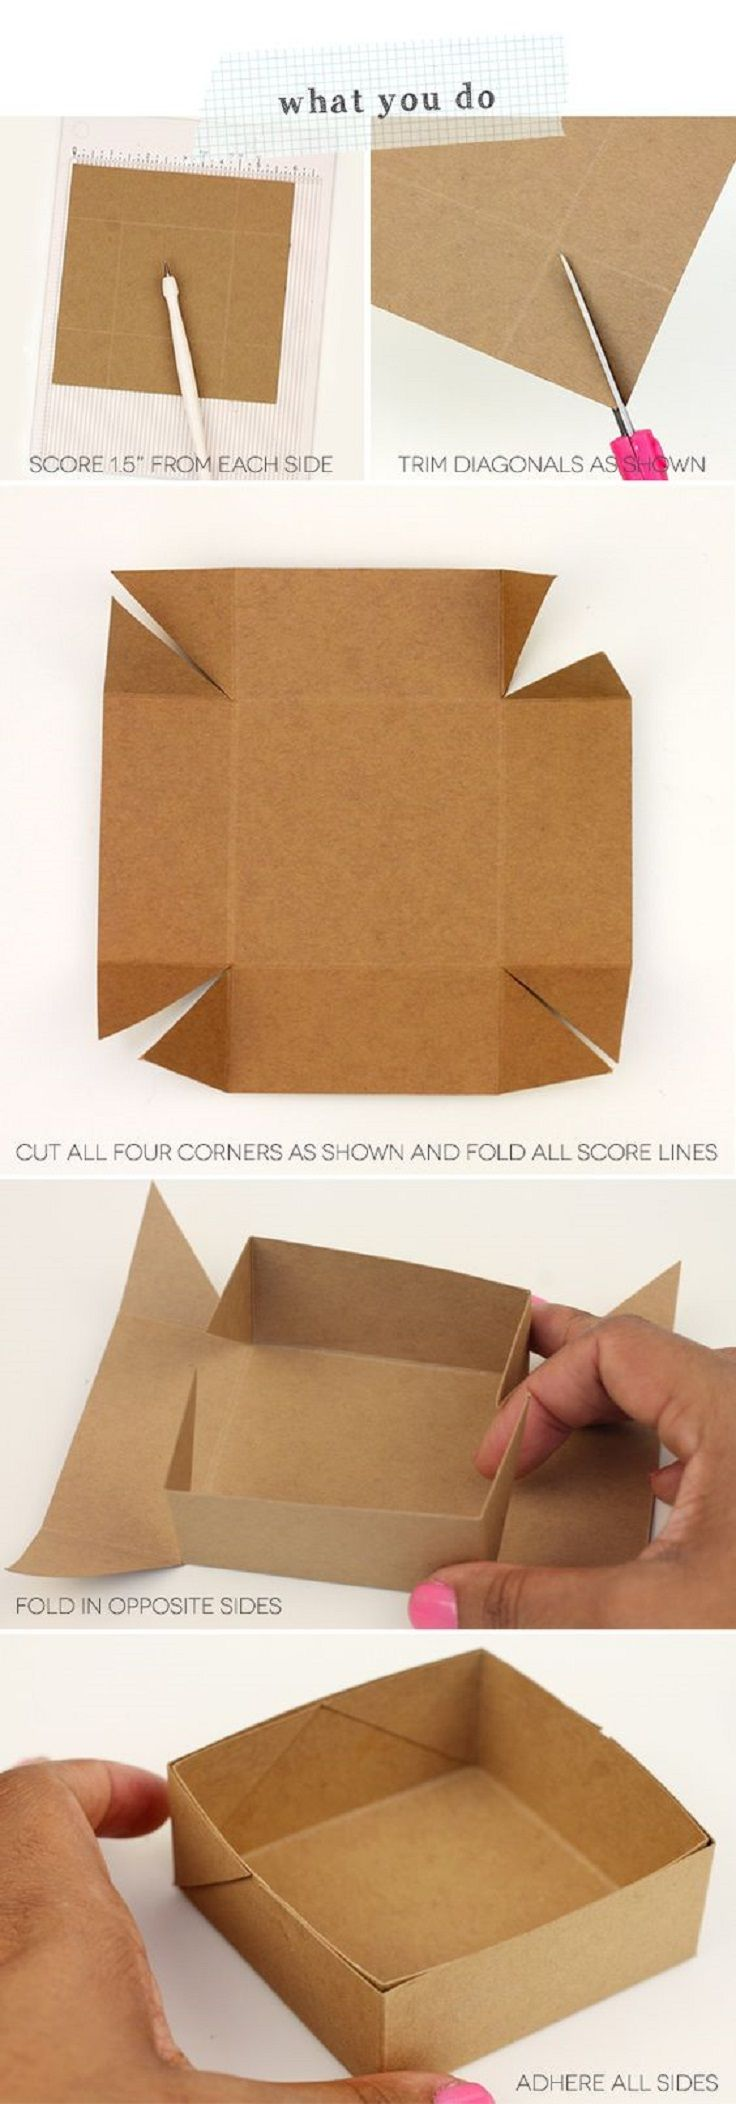 25 Best Ideas About Creative Gift Wrapping On Pinterest Creative Box Wrapping Gifts And